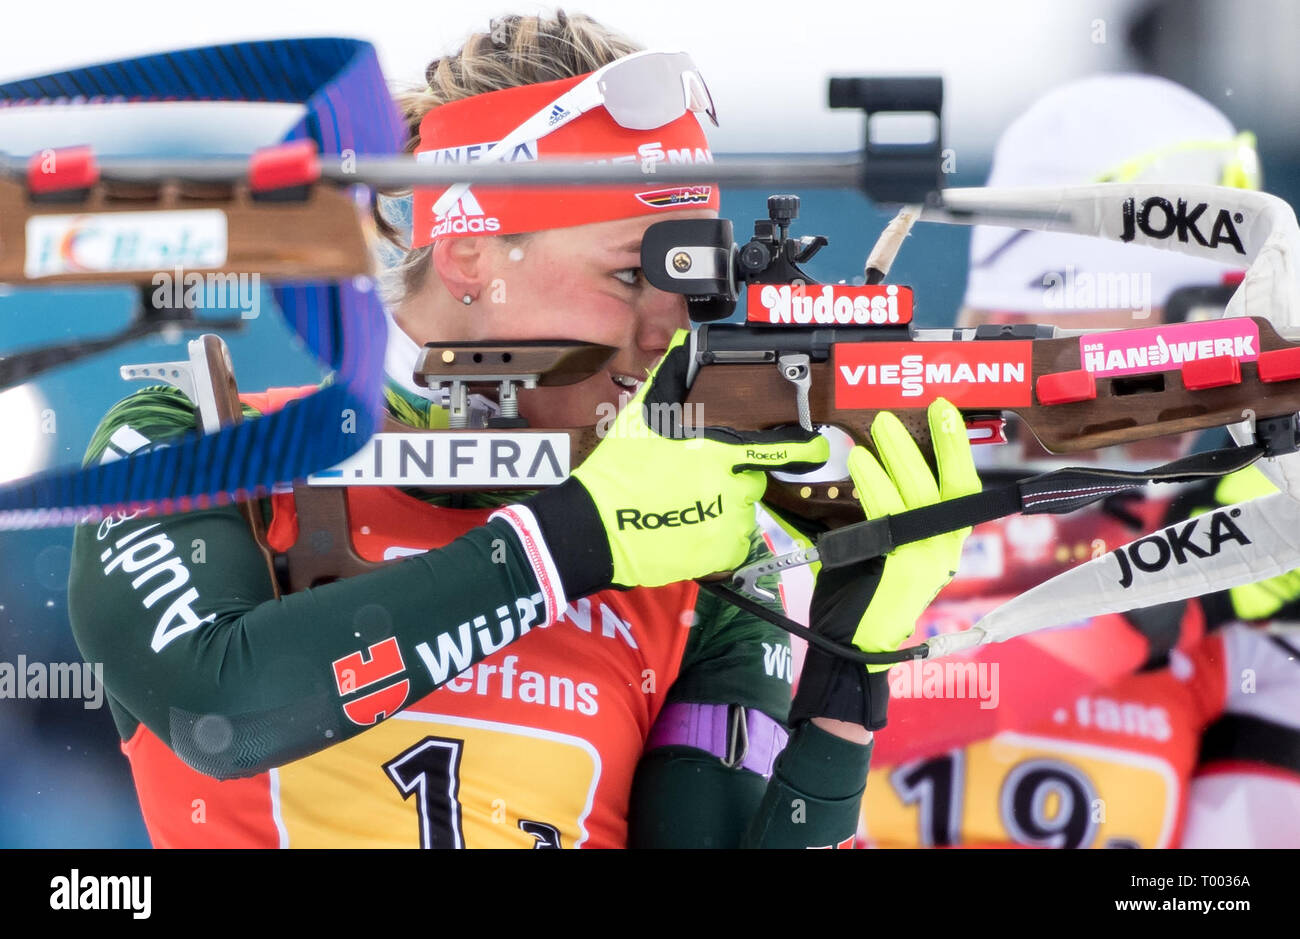 Östersund, Sweden. 16th March 2019.  World Championship, relay 4 x 6 km, women. Denise Herrmann from Germany in action. Credit: dpa picture alliance/Alamy Live News Credit: dpa picture alliance/Alamy Live News Credit: dpa picture alliance/Alamy Live News - Stock Image